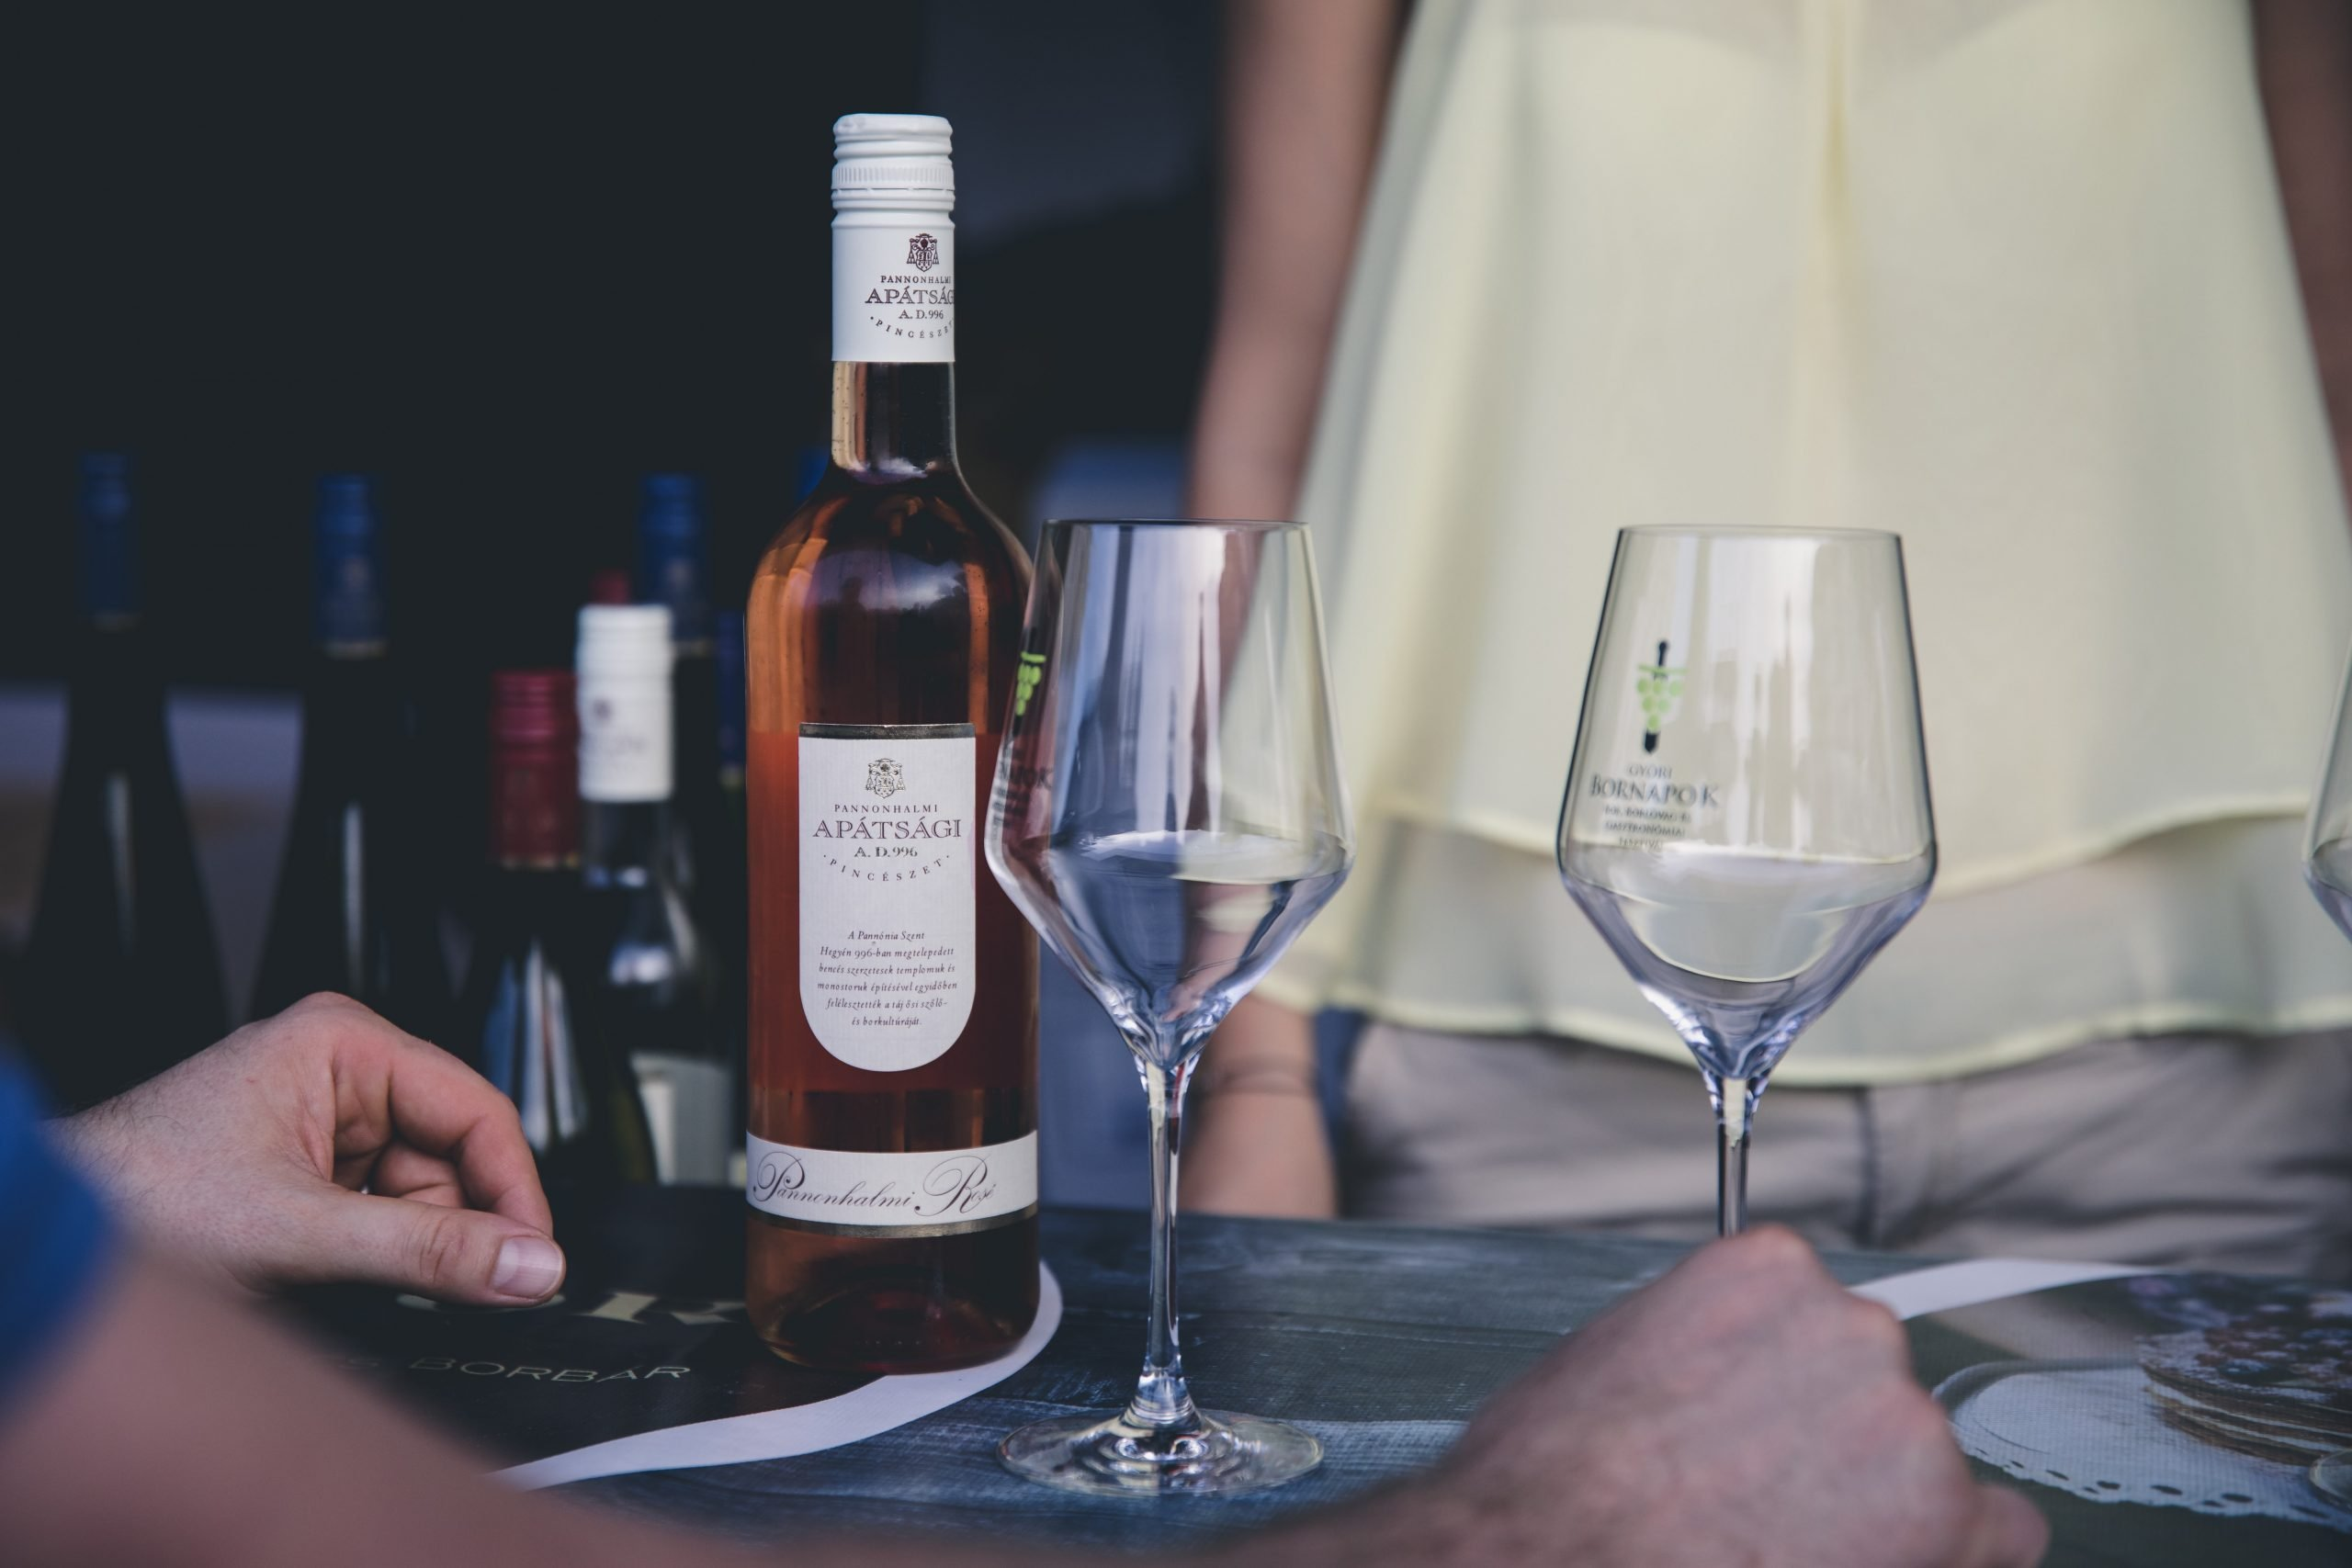 A photo of Apatsagi wine and two wine glasses